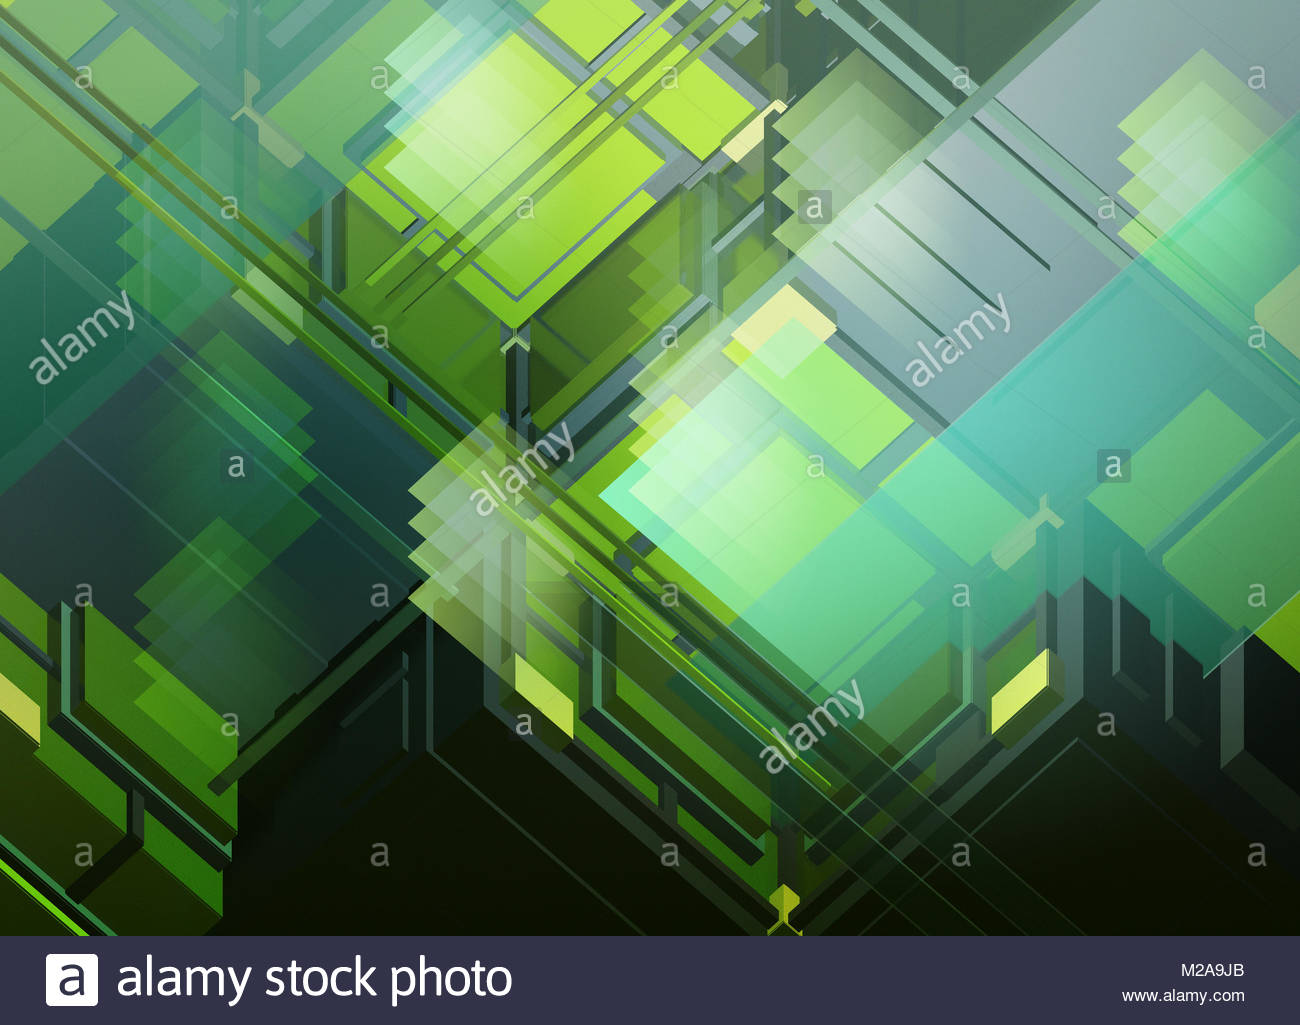 Abstract three dimensional geometric translucent structure - Stock Image